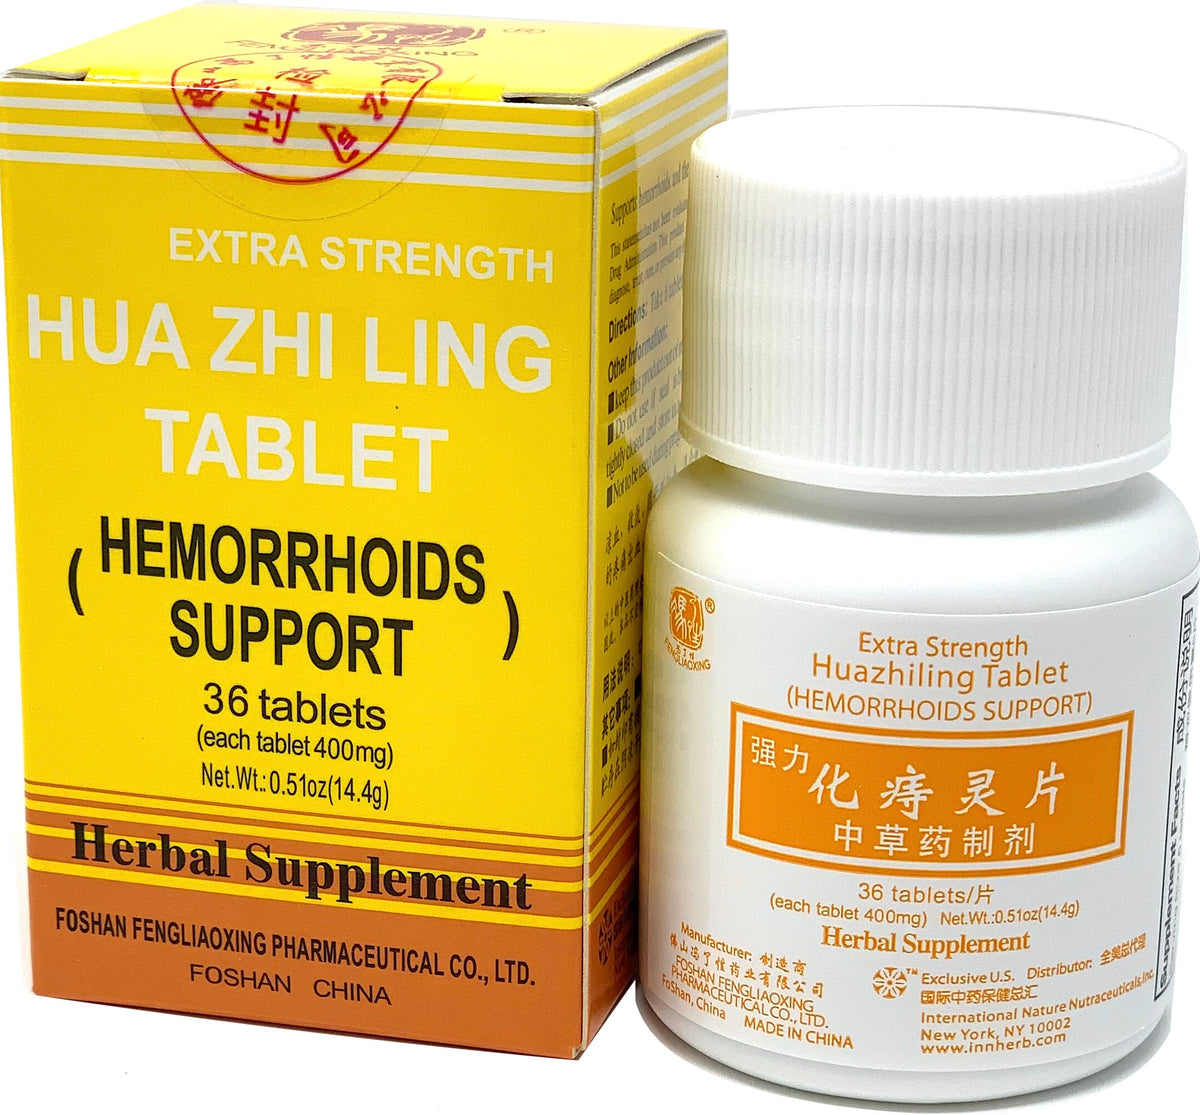 Hemorrhoids Support (Hua Zhi Ling Tablet) 强力化痔灵